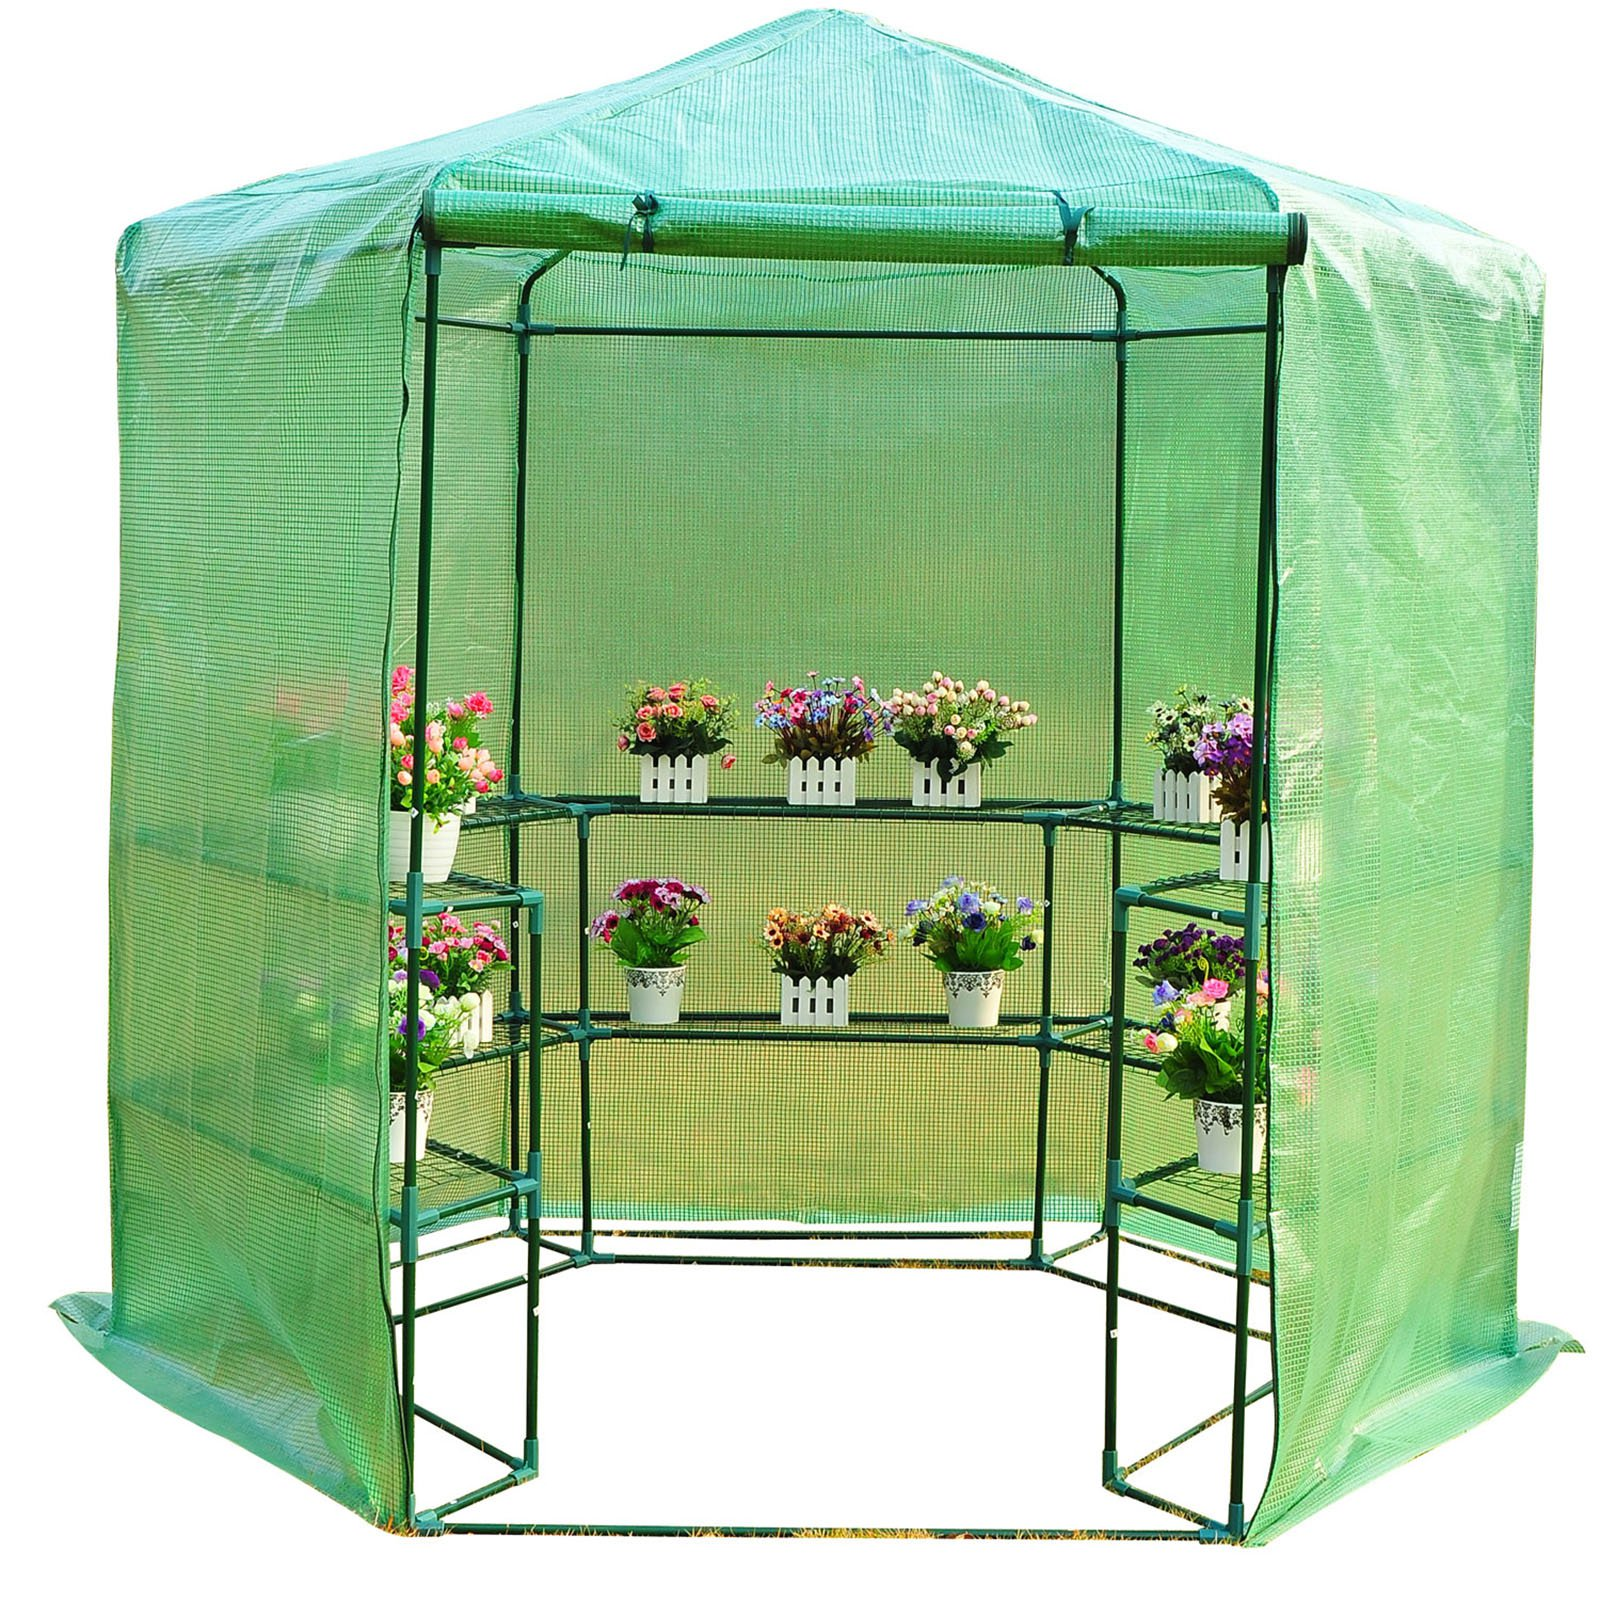 Outsunny 7.5 ft. Hexagonal 3 Tier Shelf Walk In Portable Greenhouse by Aosom